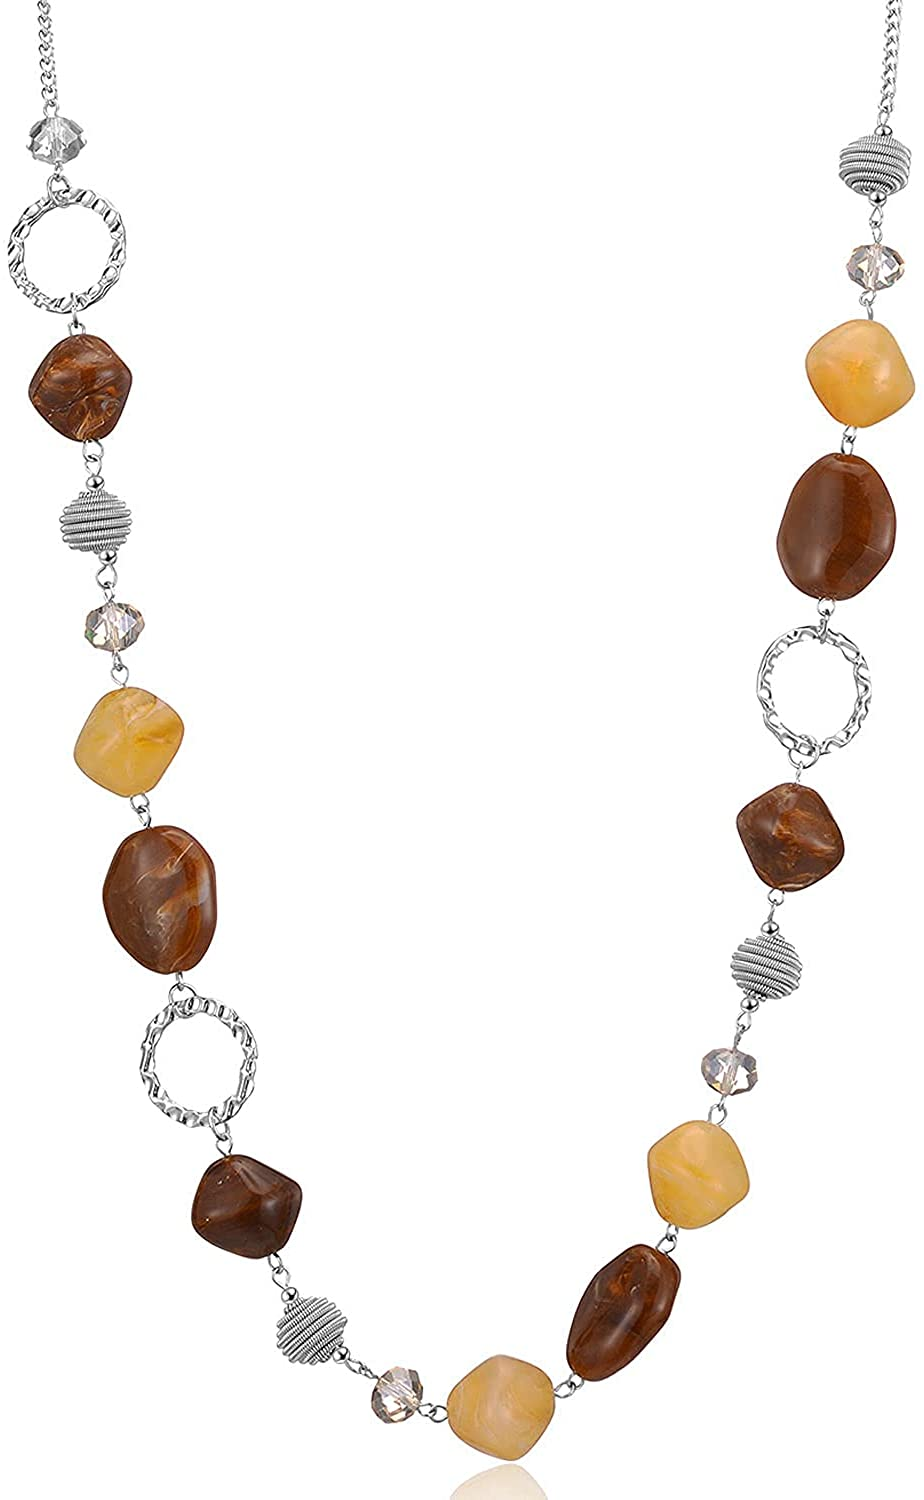 Beaded Long Necklace for Women Las Vegas Mall Max 56% OFF Chain Silver Sweater wit